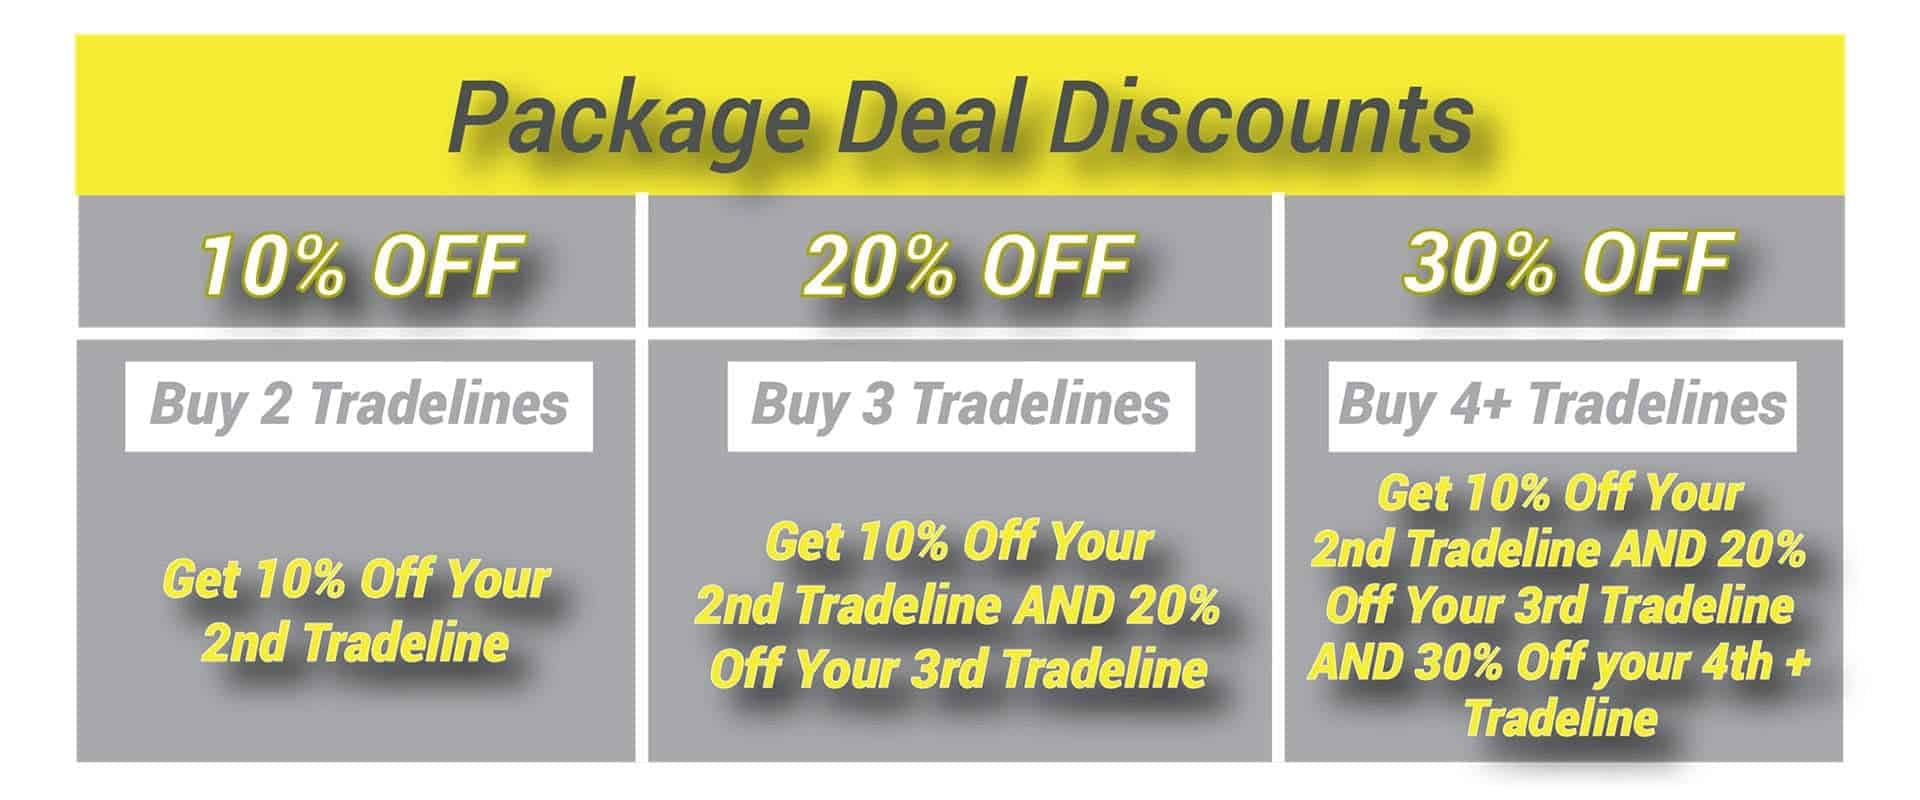 Package Deal Discounts